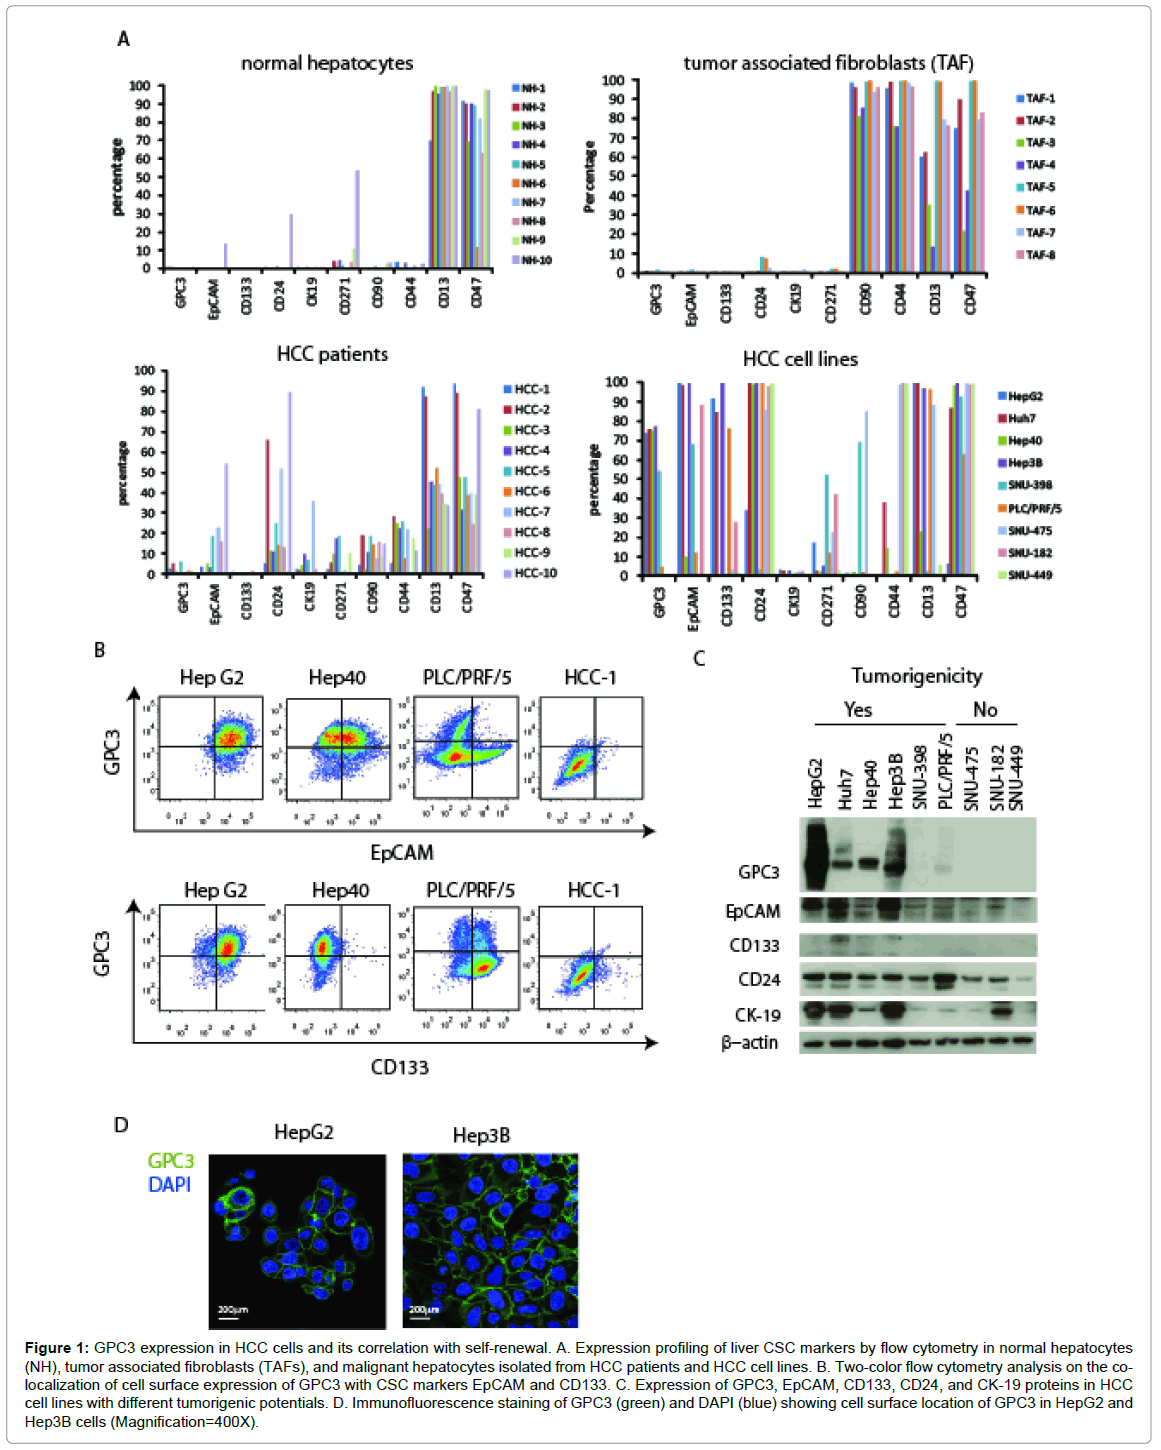 stem-cell-research-therapy-tumor-associated-fibroblasts